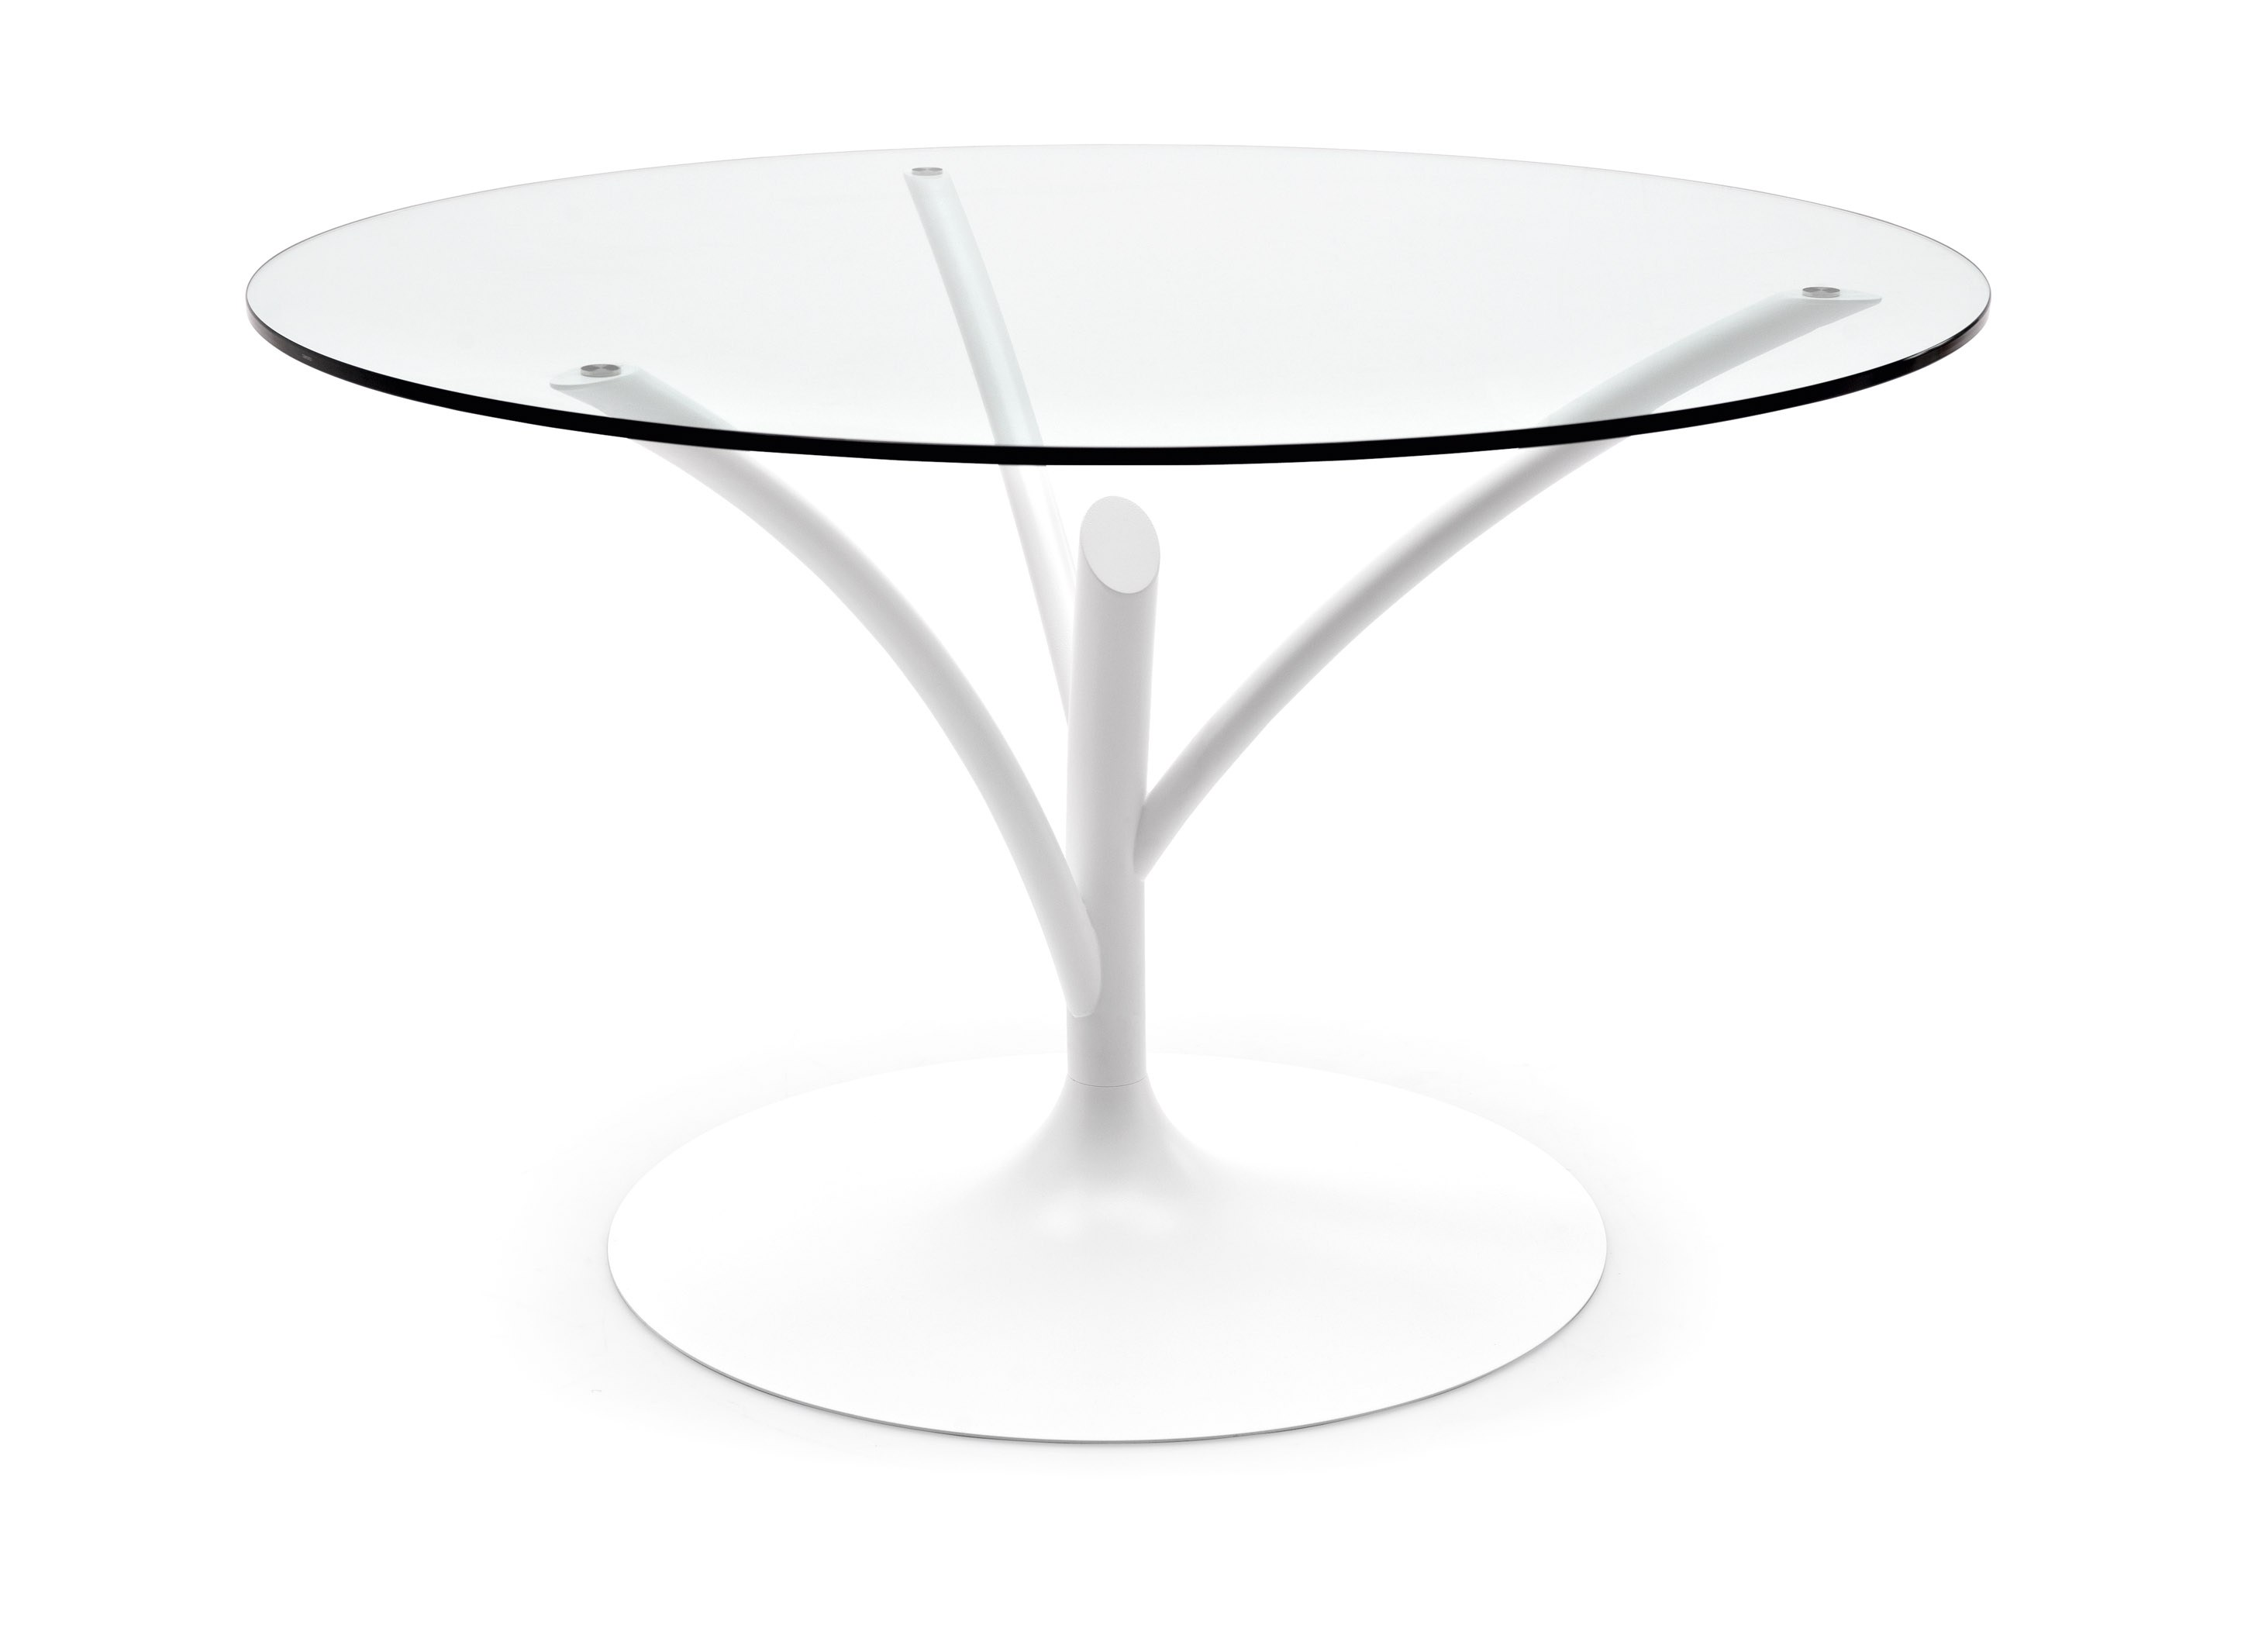 Acacia By Calligaris Design Marcello Ziliani